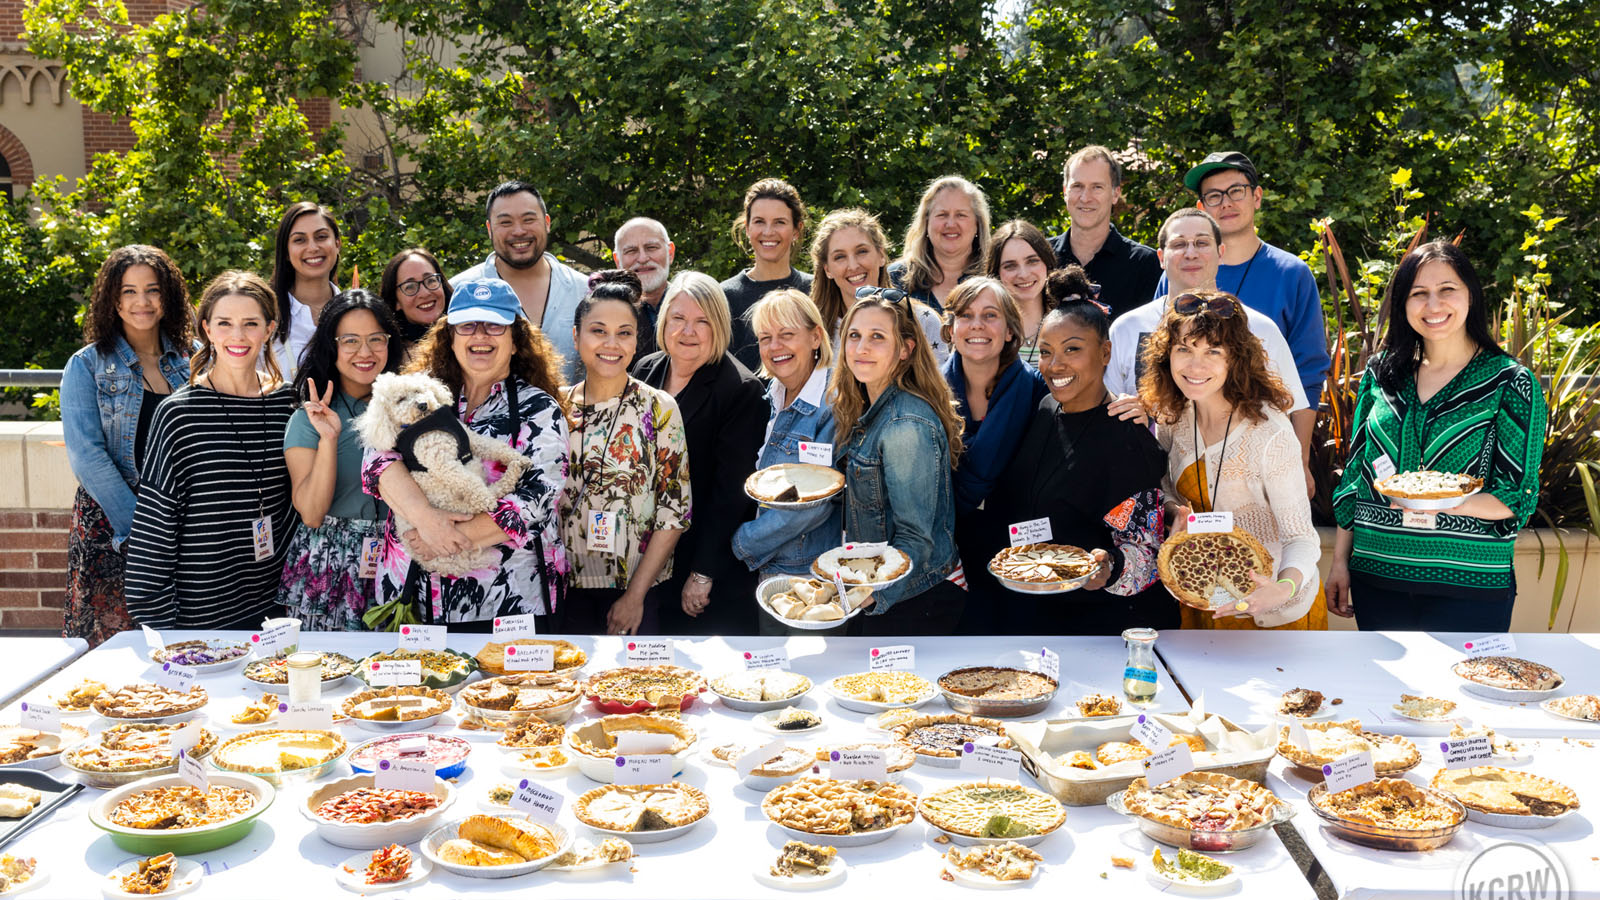 good-foods-annual-pie-contest-at-ucla.jpg